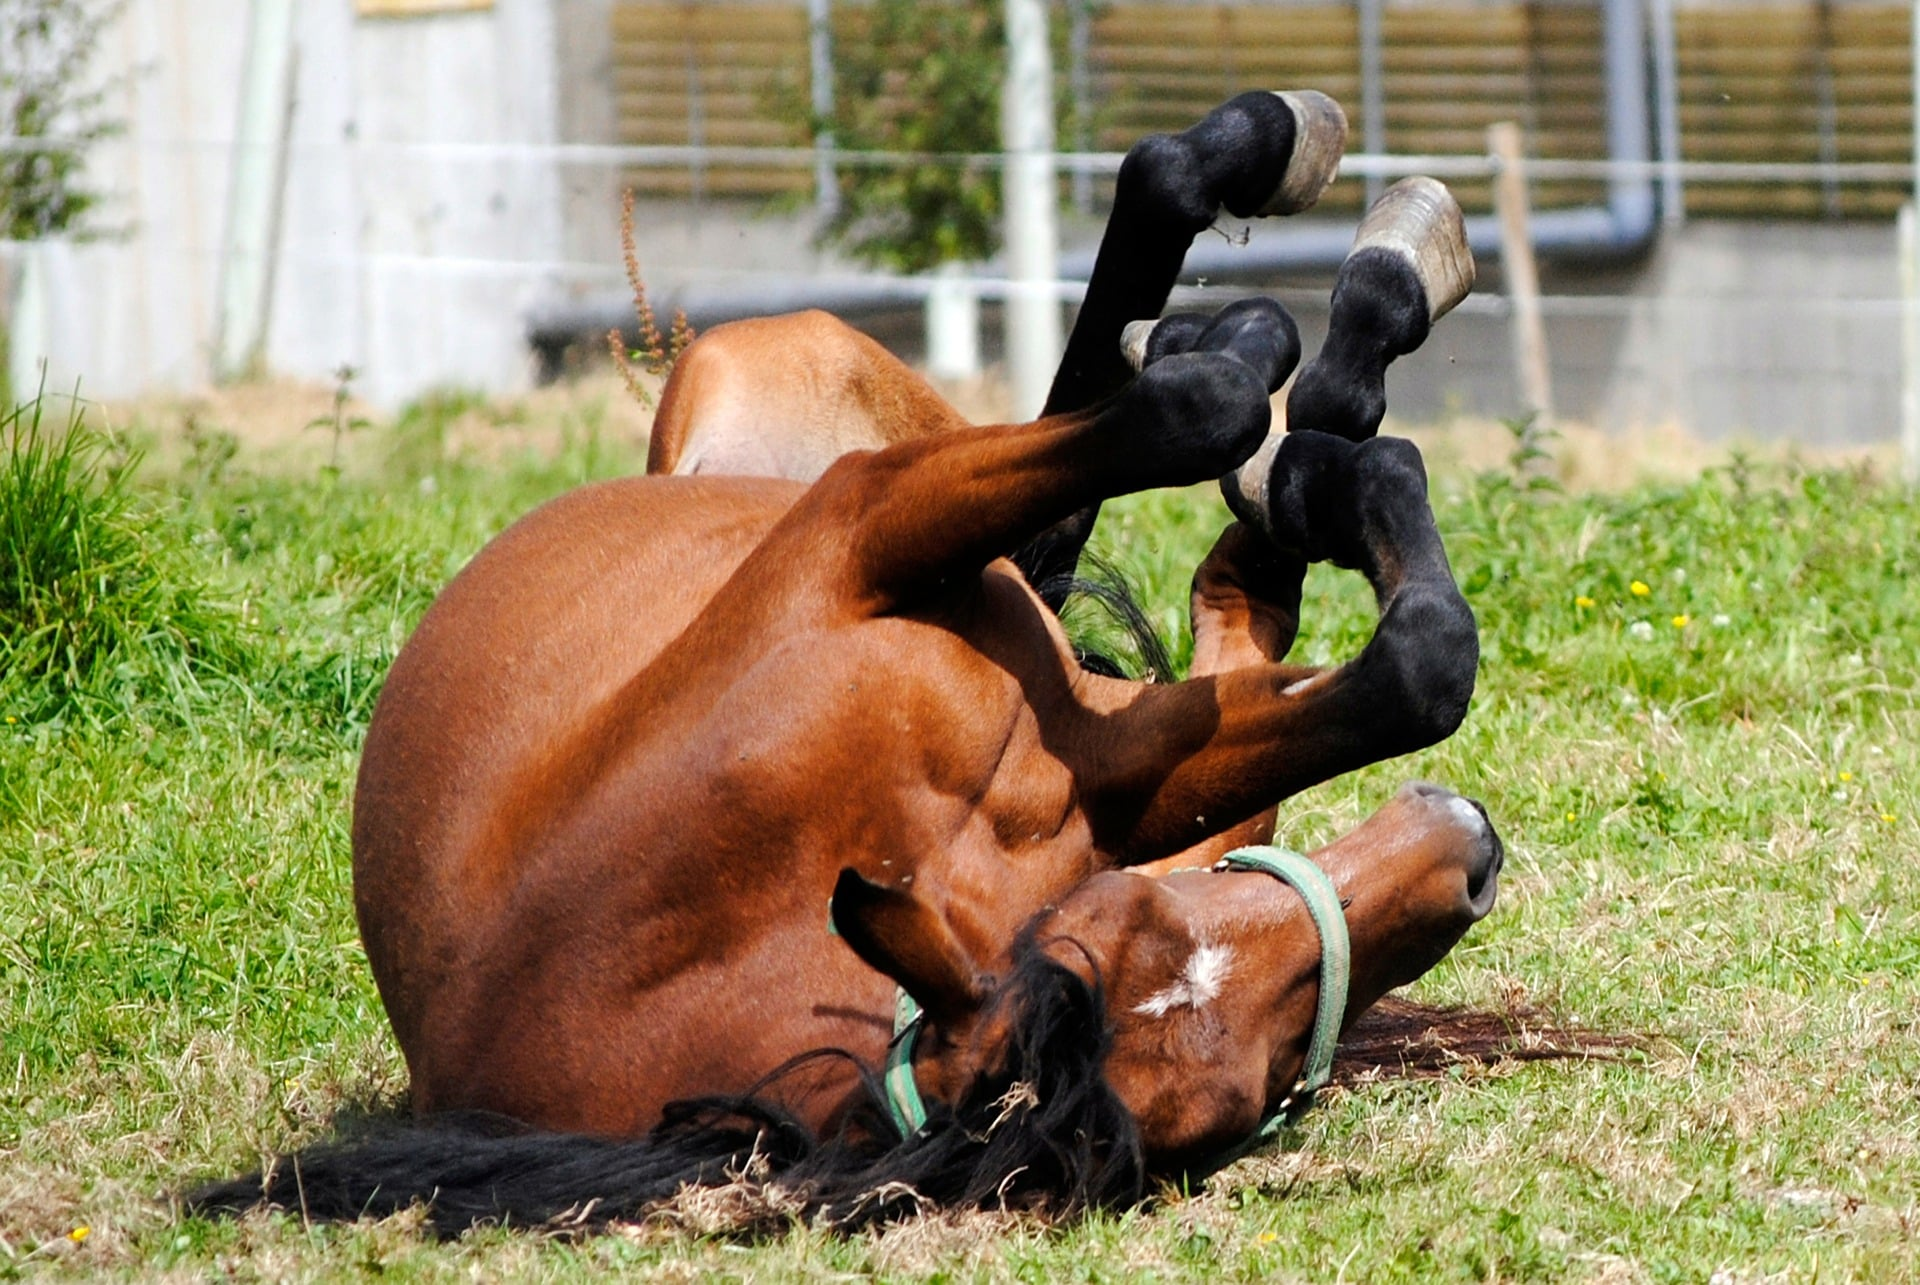 The key is finding what works for your horse